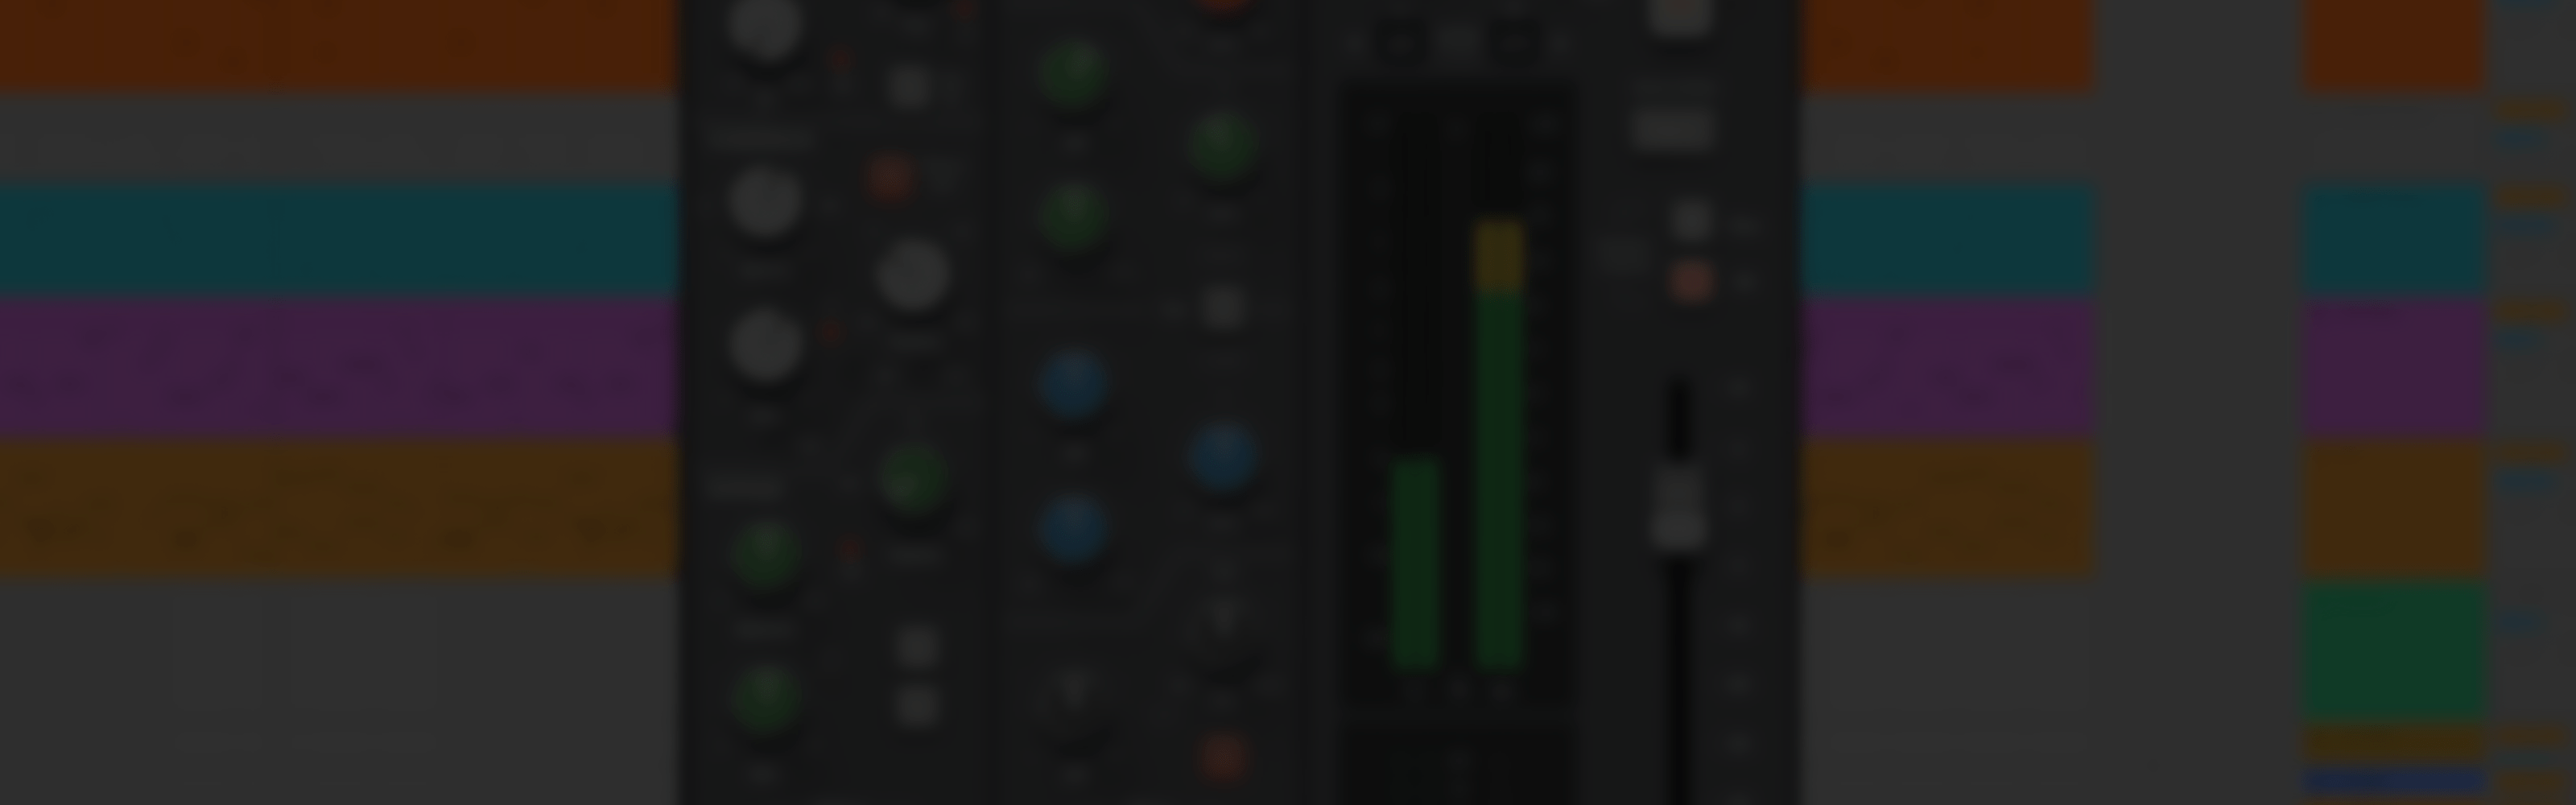 Custom Skin for bx_console SSL4000E!